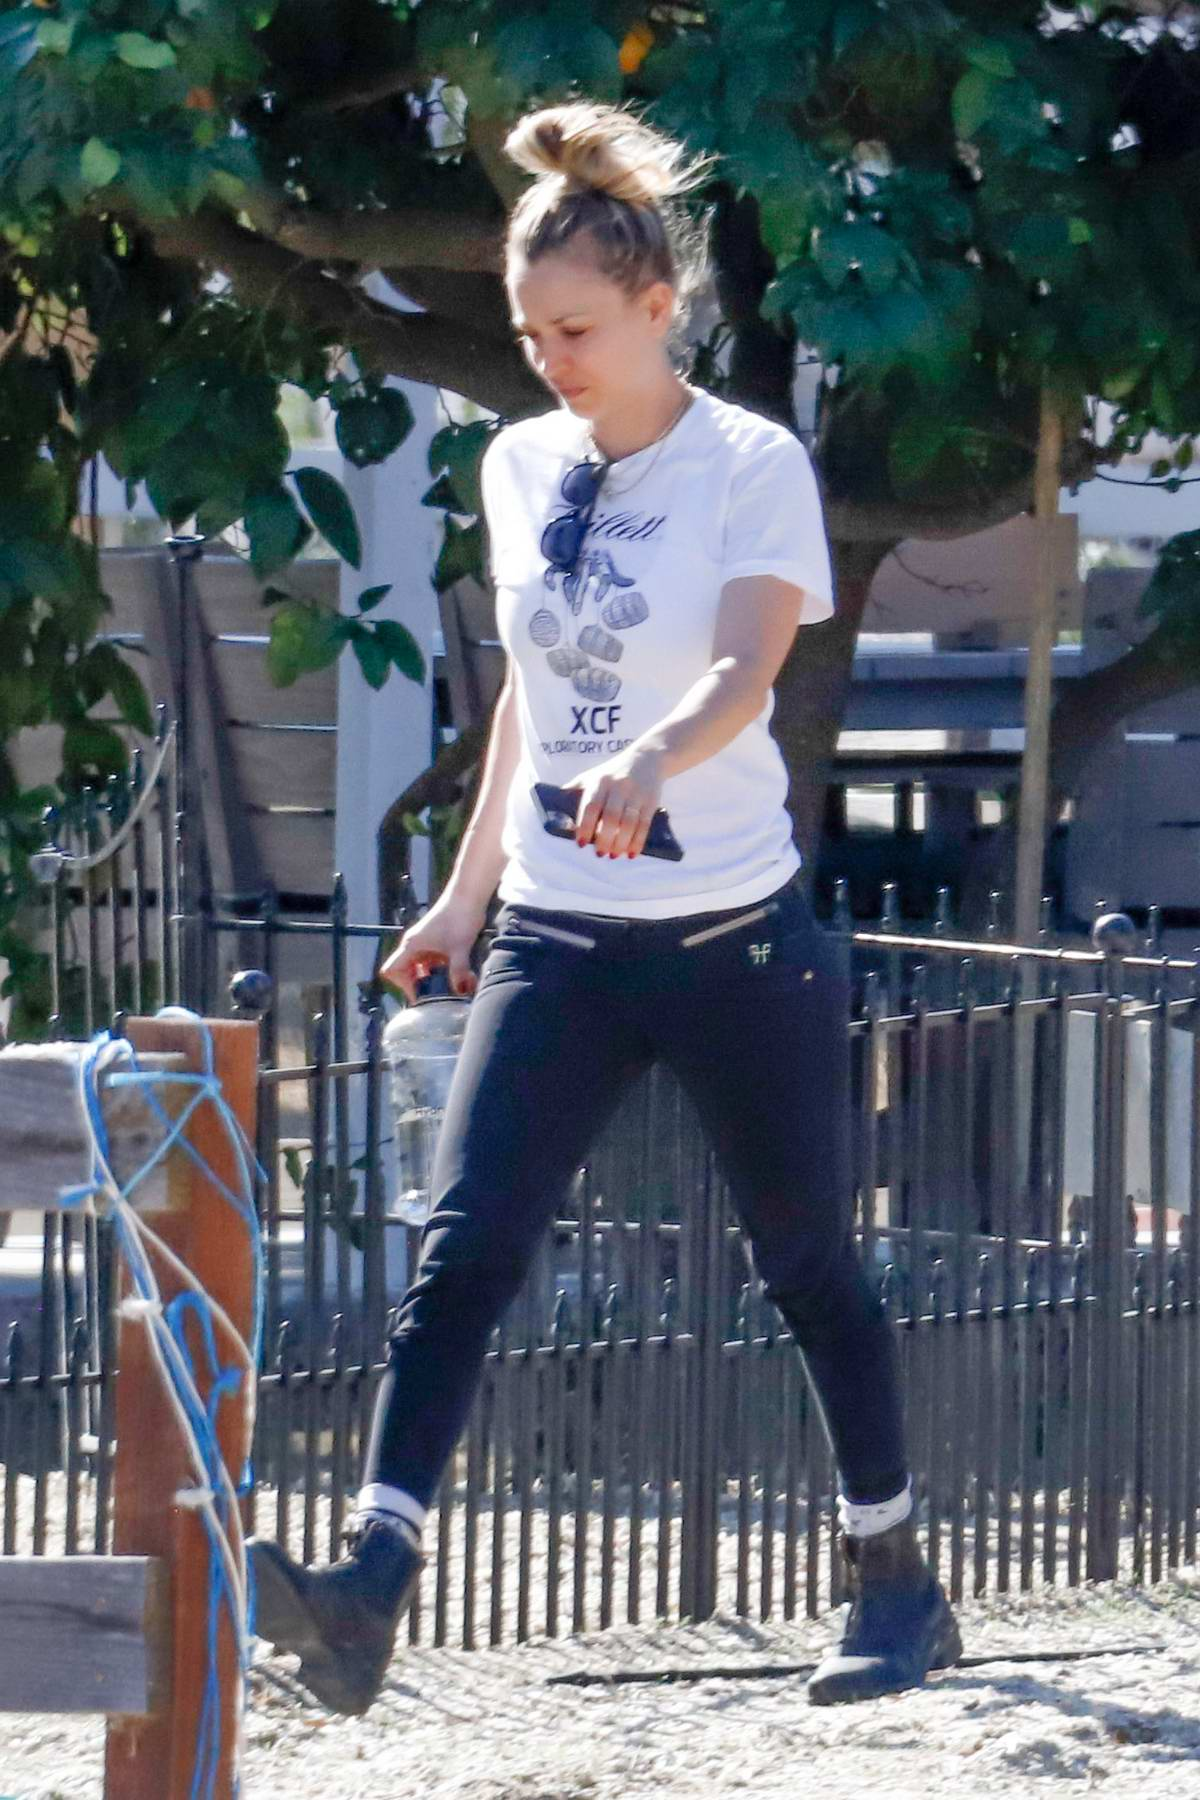 Kaley Cuoco keeps it casual with a white tee and black leggings as she steps out to walk her dog in Los Angeles